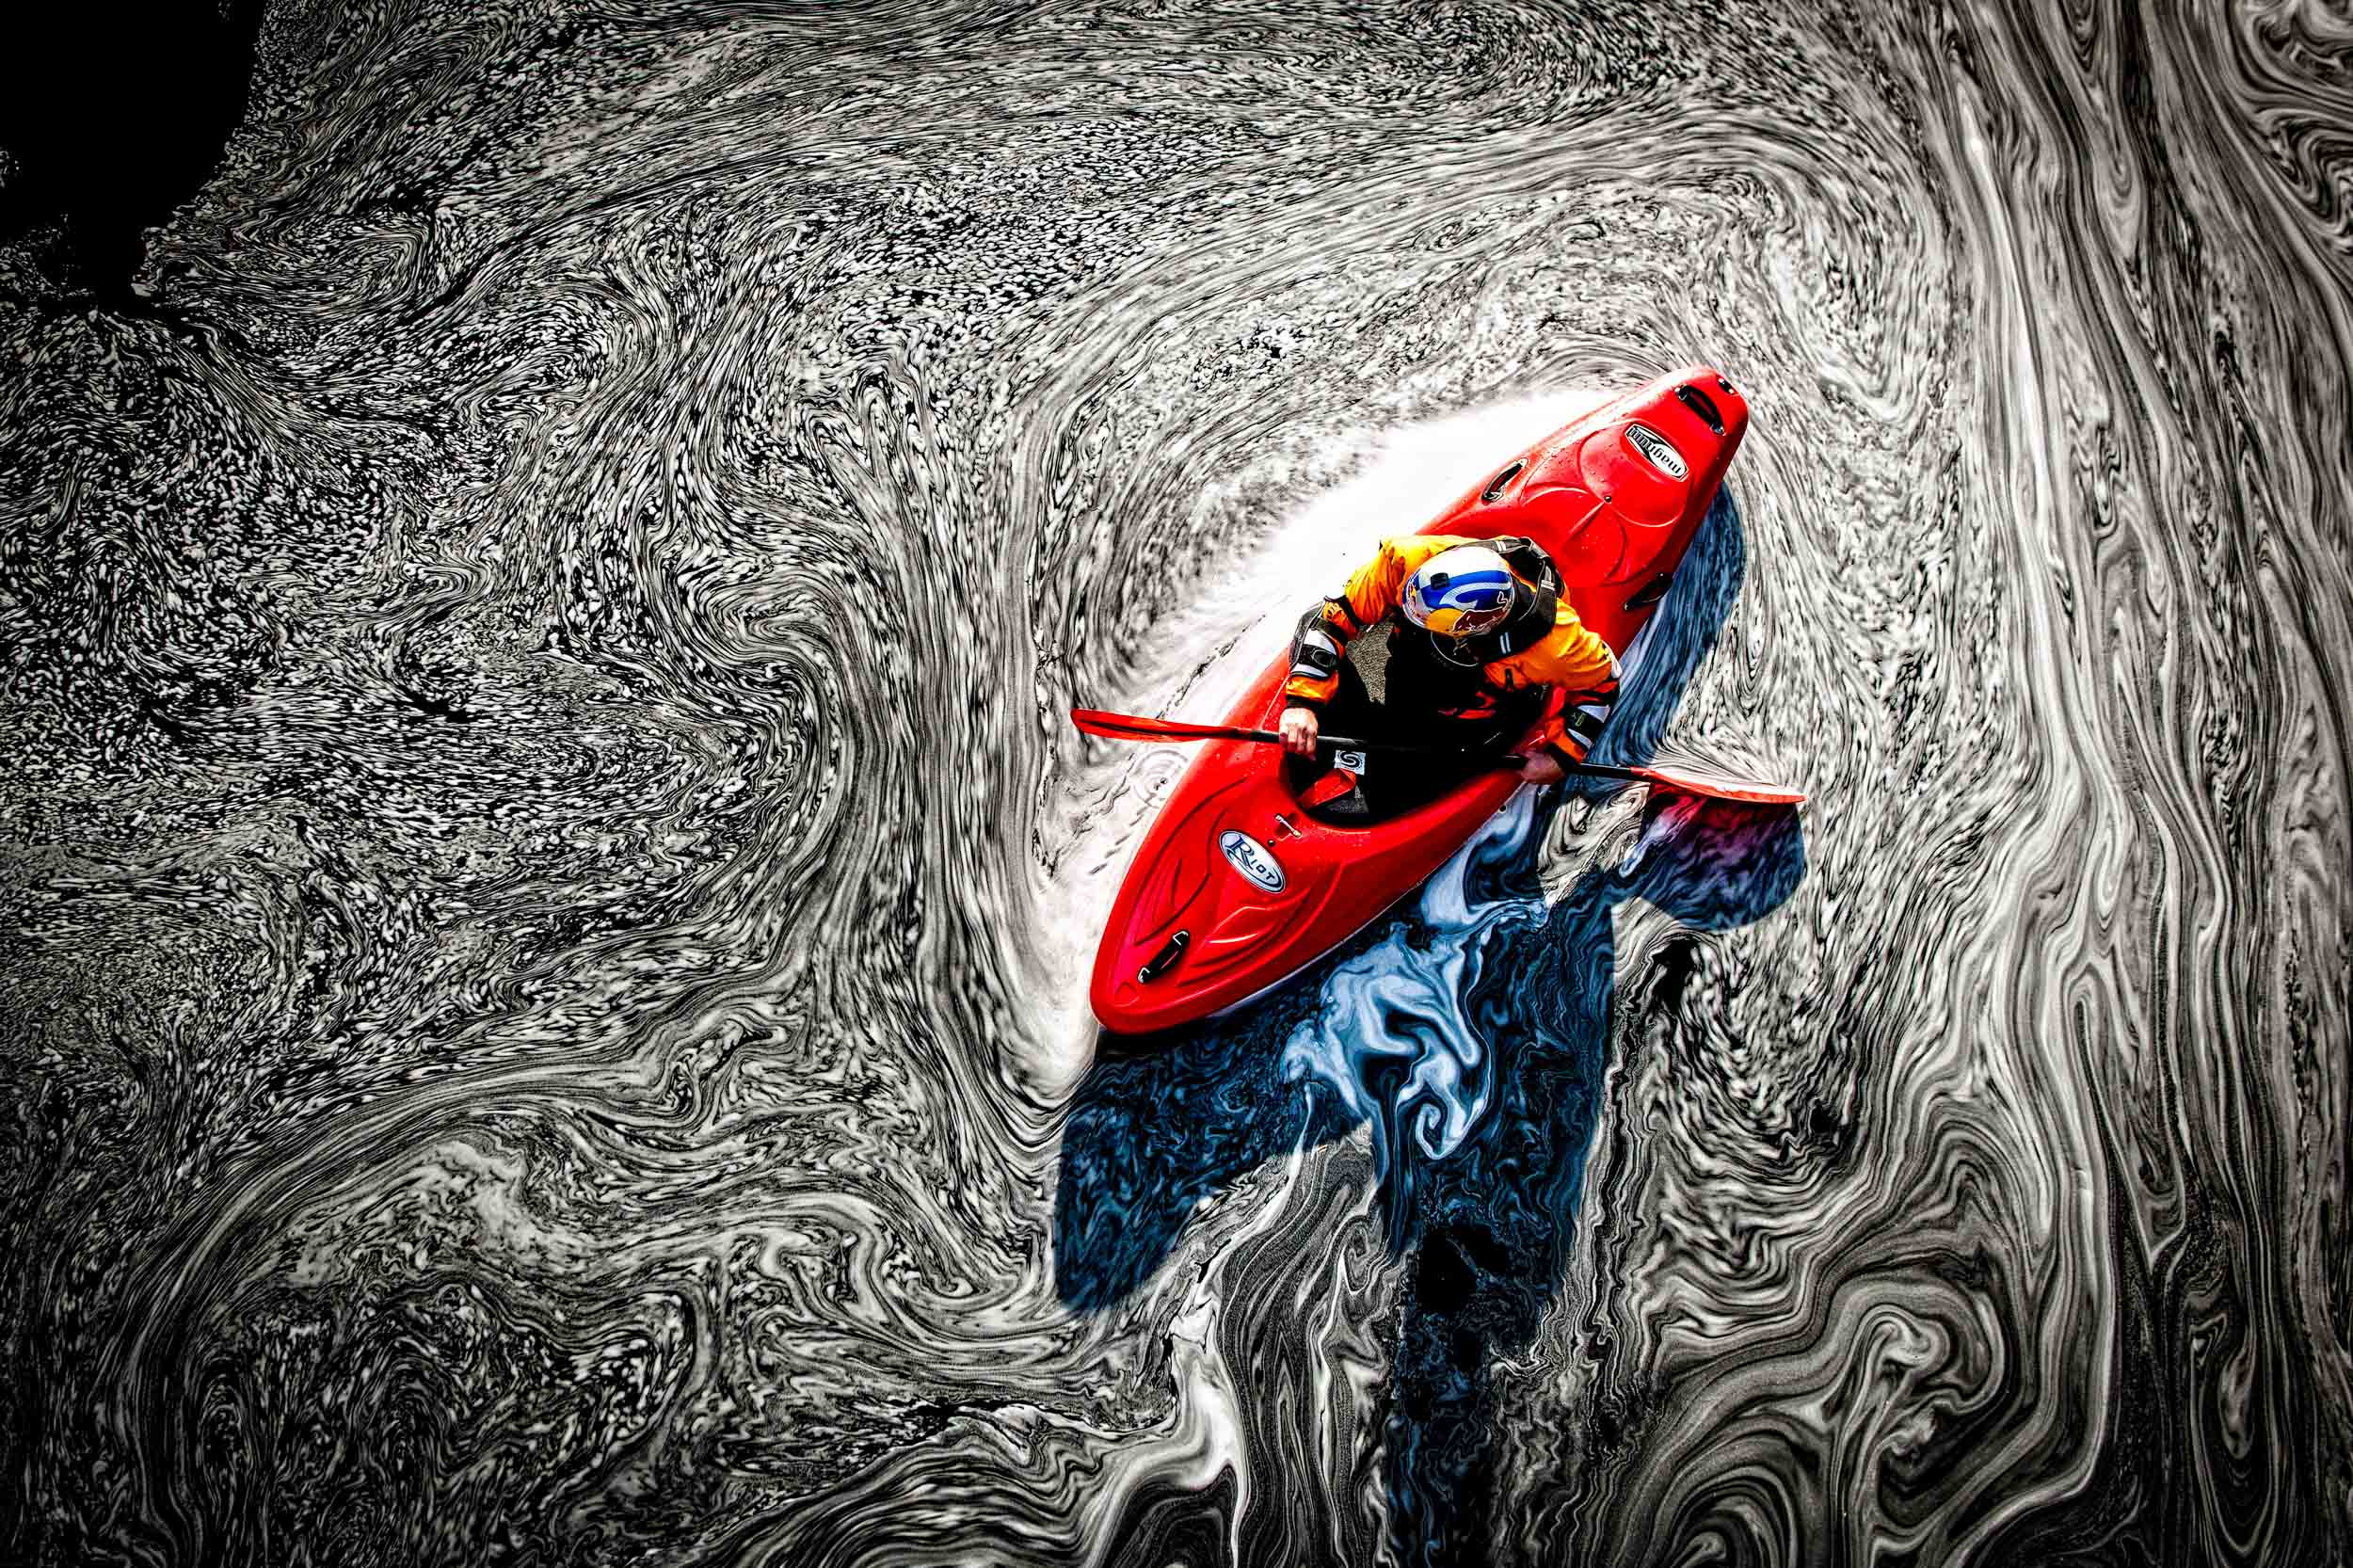 Adventure_Photo_Gilman_4576_kayak.JPG